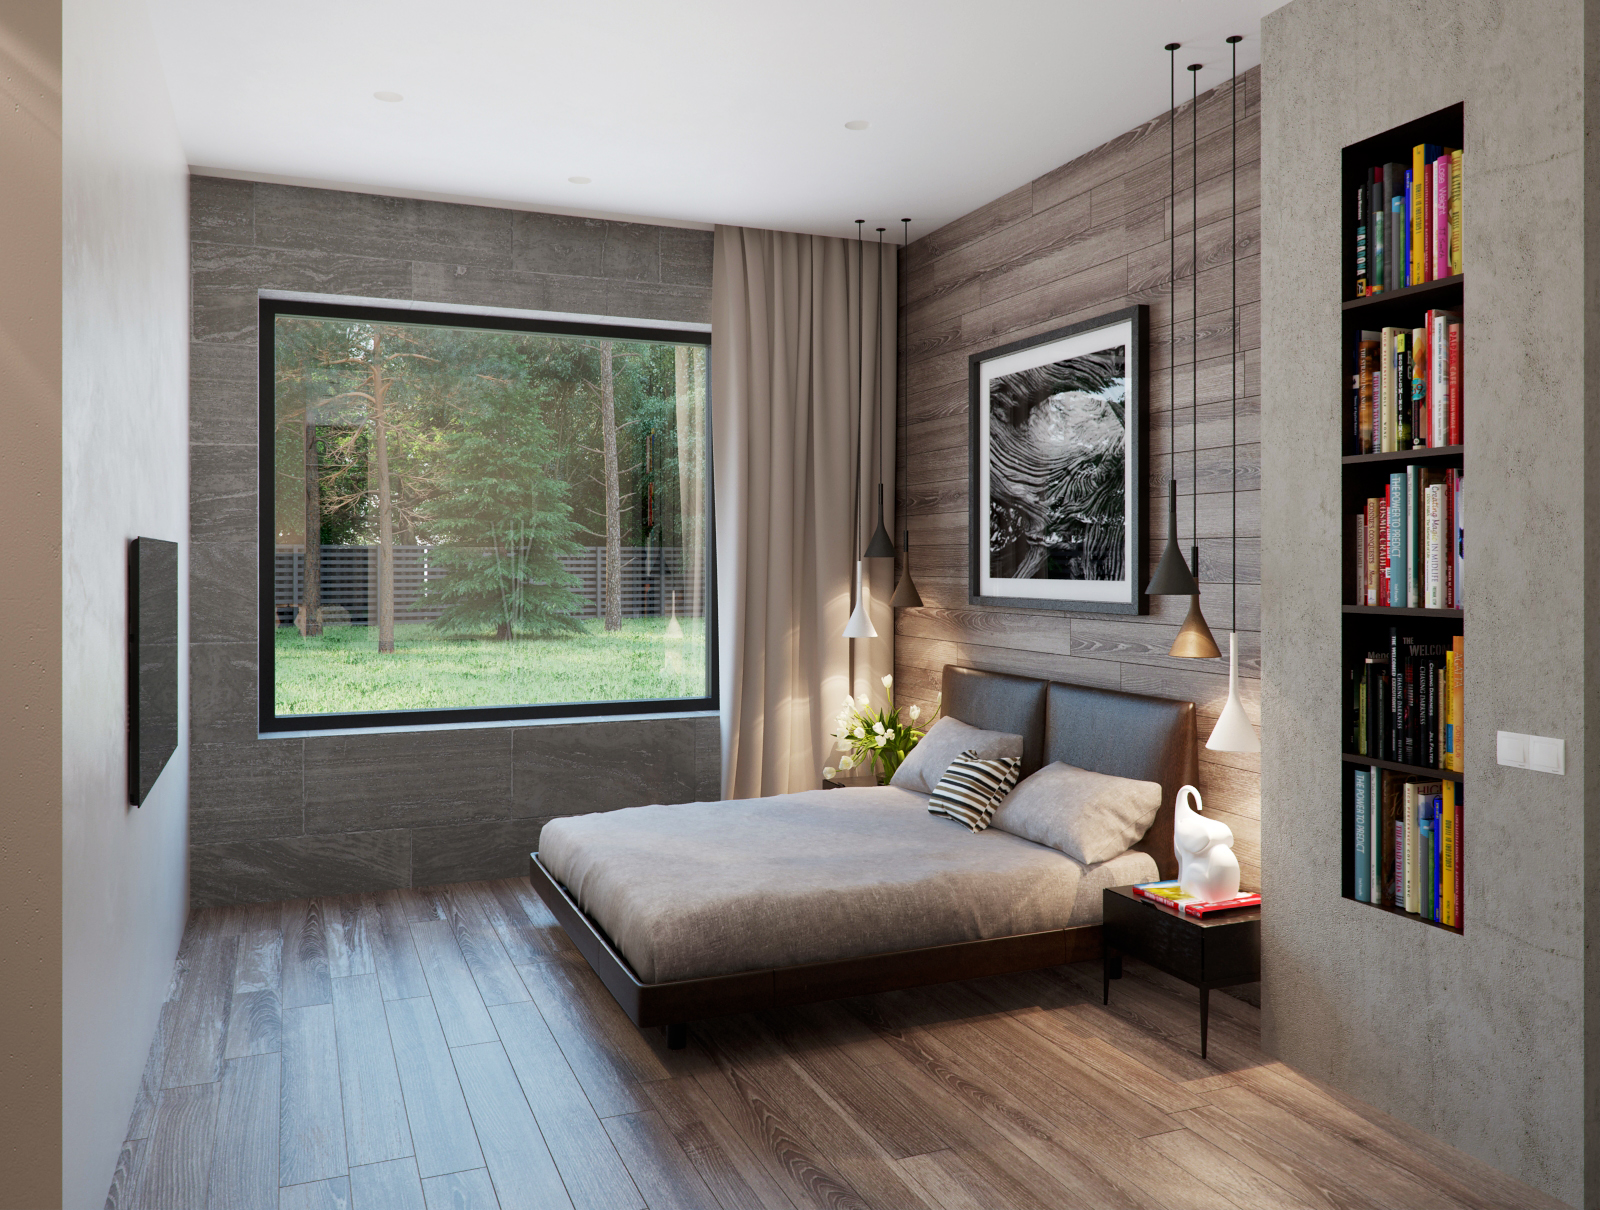 tiny bedroom ideas 20 small bedroom ideas that will leave you speechless architecture beast 8476